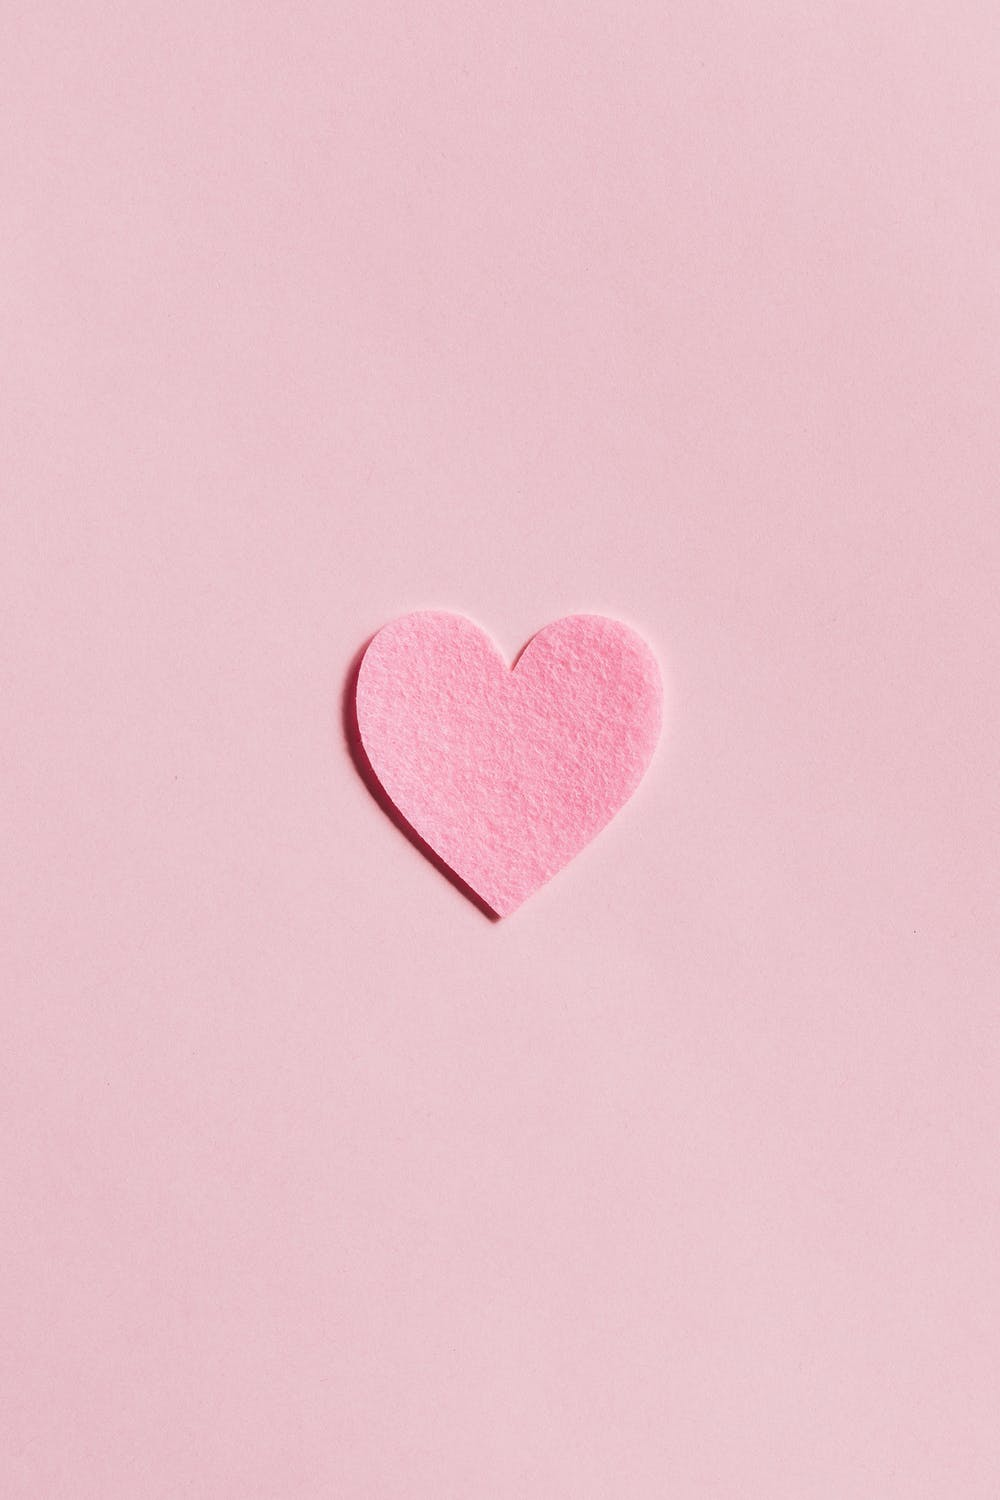 Cute pink iPhone wallpapers with heart